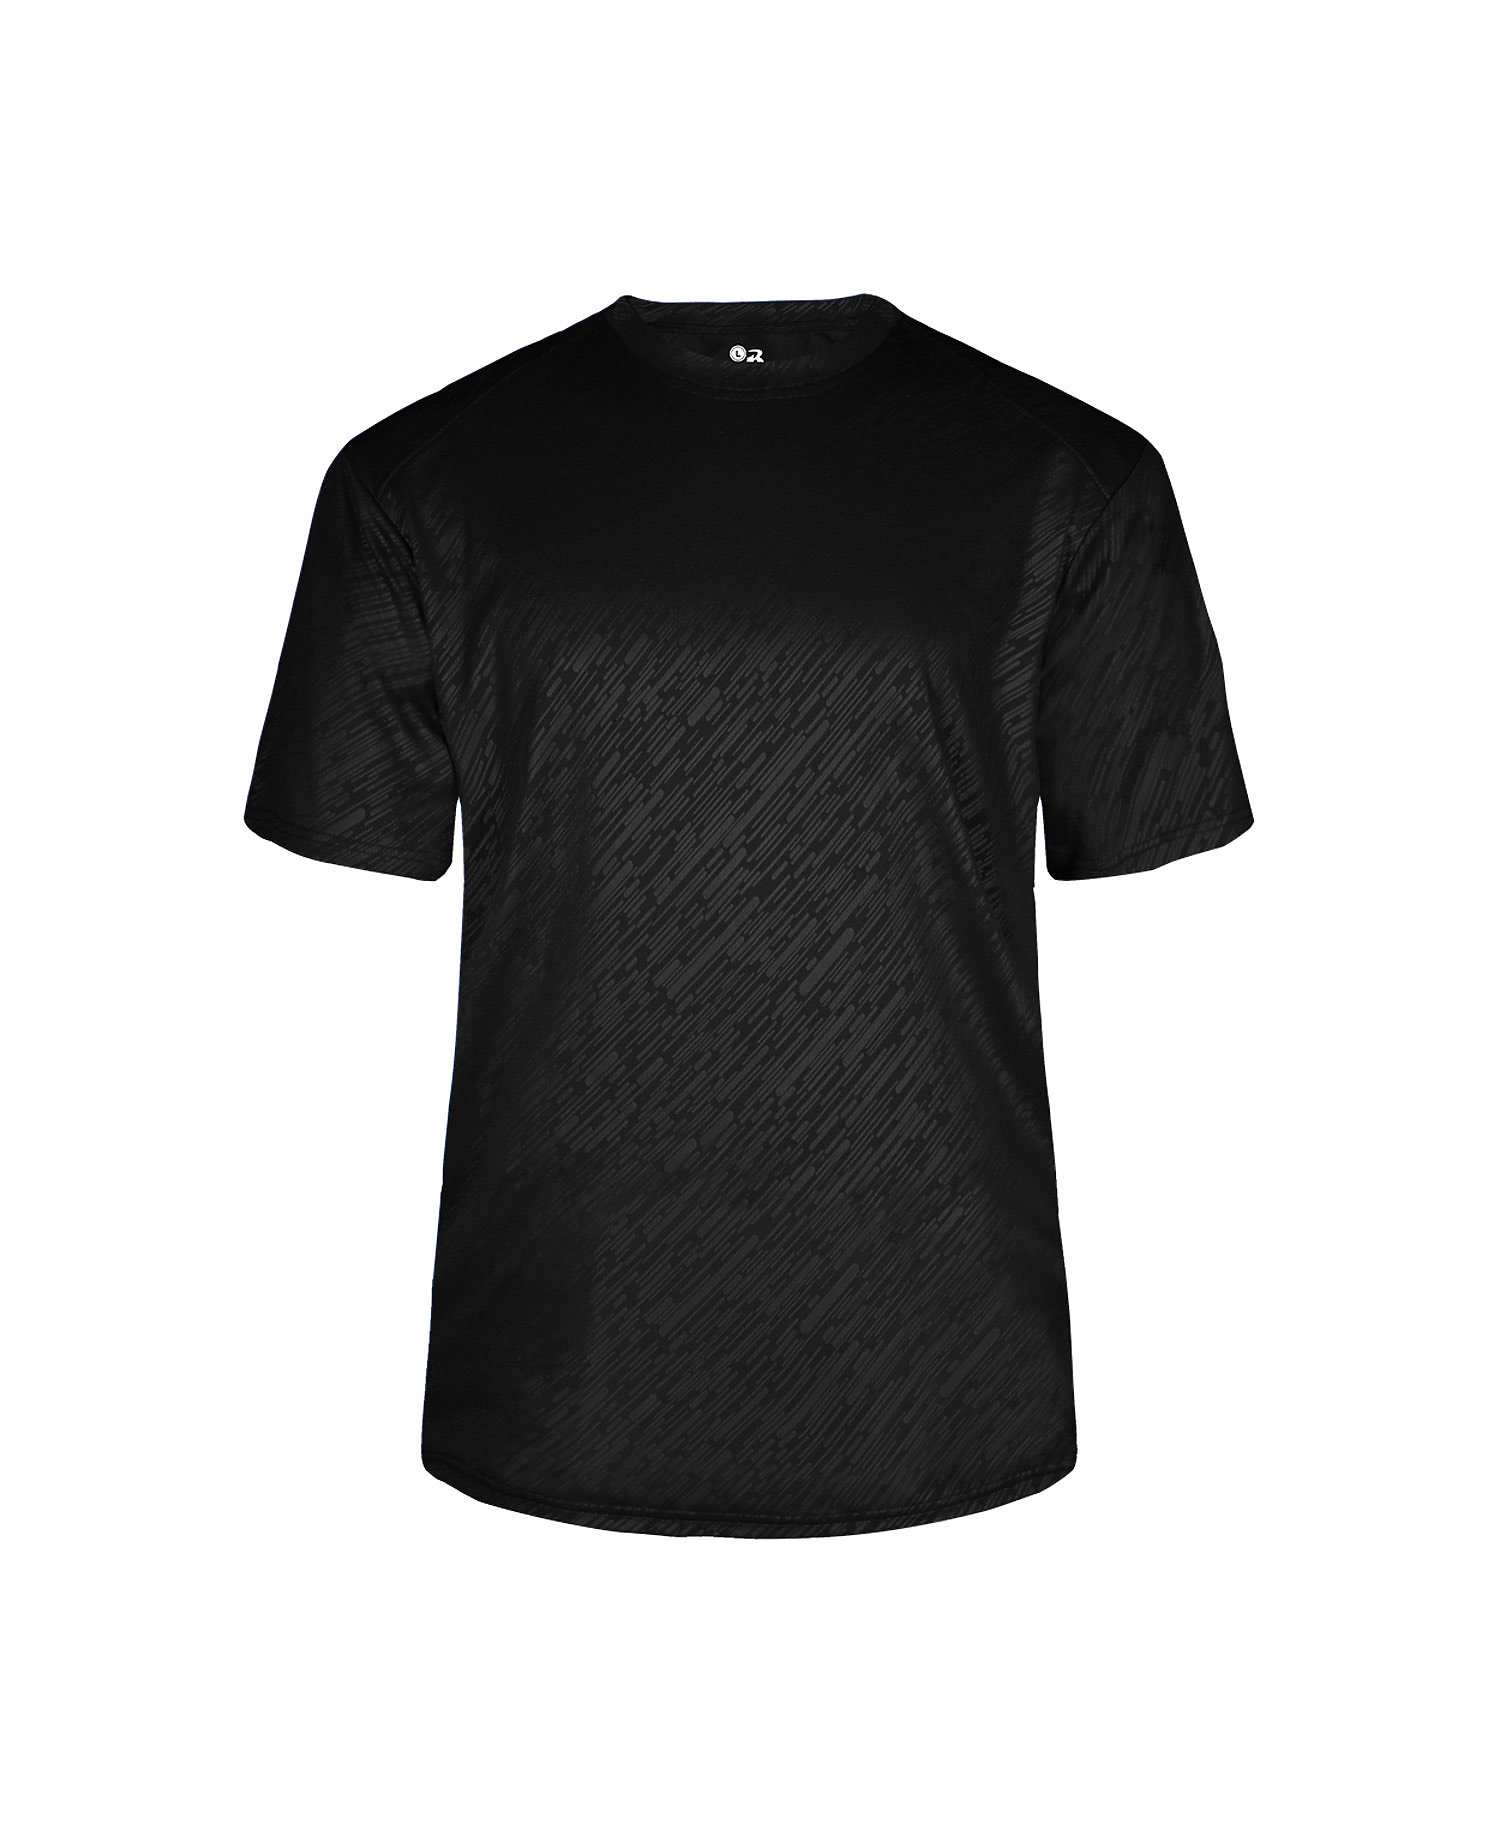 Badger Sport 2131 - Youth Lined Embossed Tee